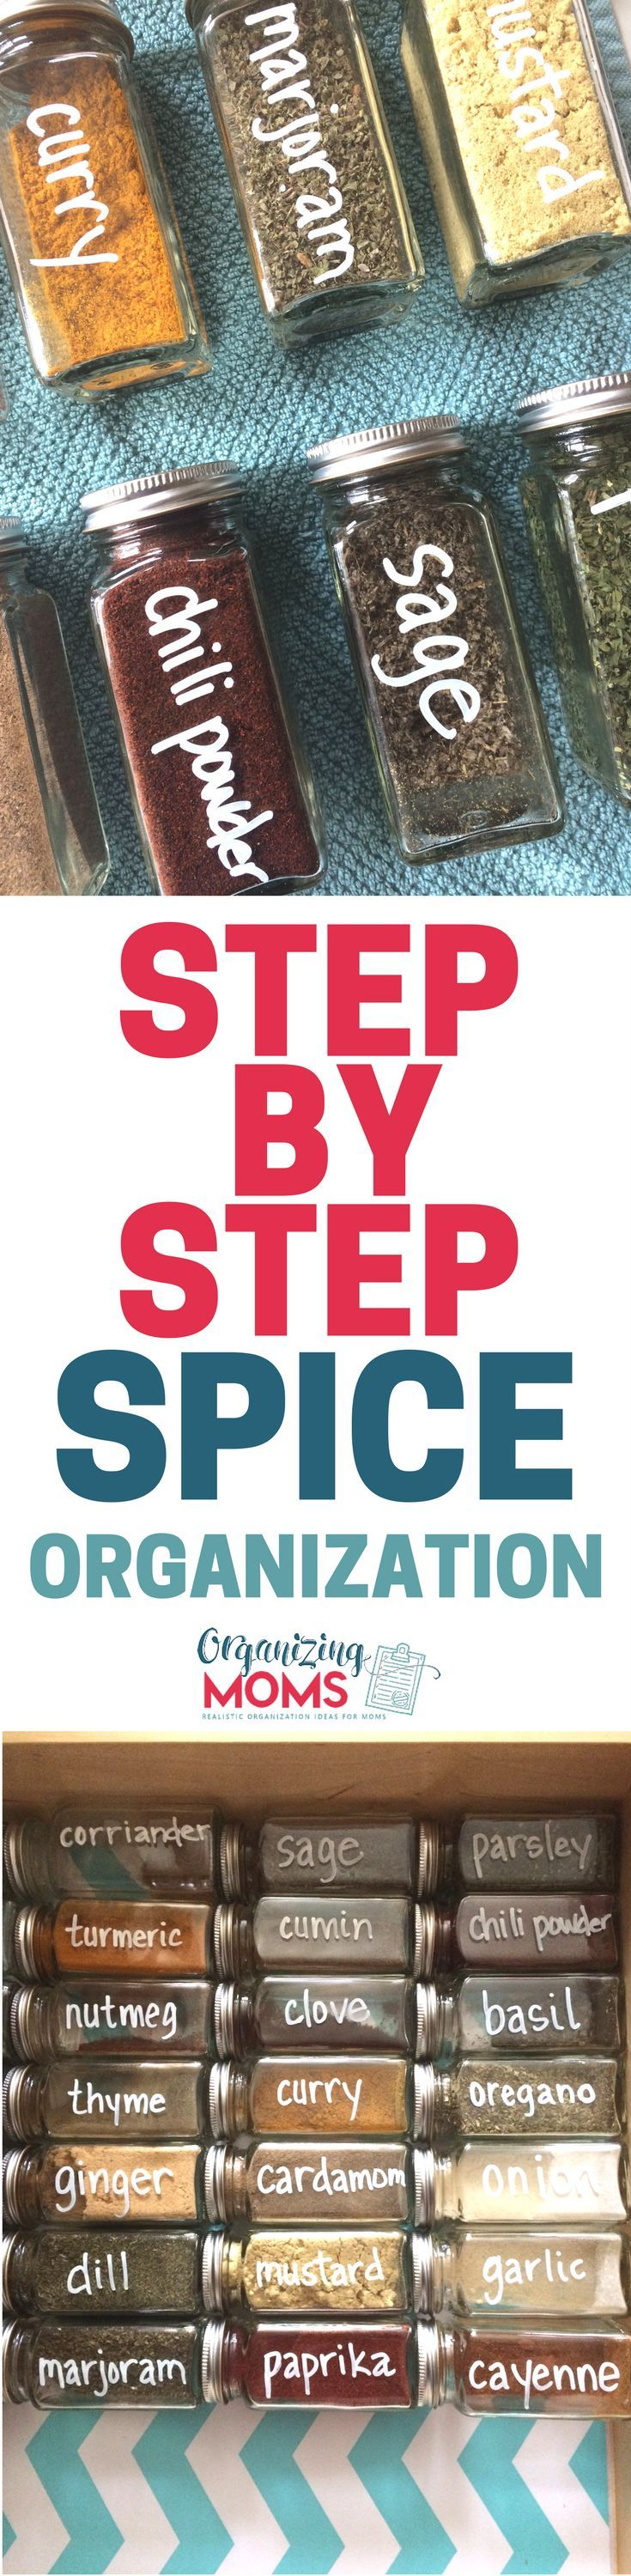 AMAZING! The ideas in this post are so EASY, and make a HUGE difference. I did all of these steps, and now my spice drawer looks like it's straight out of a magazine. I LOVE it!